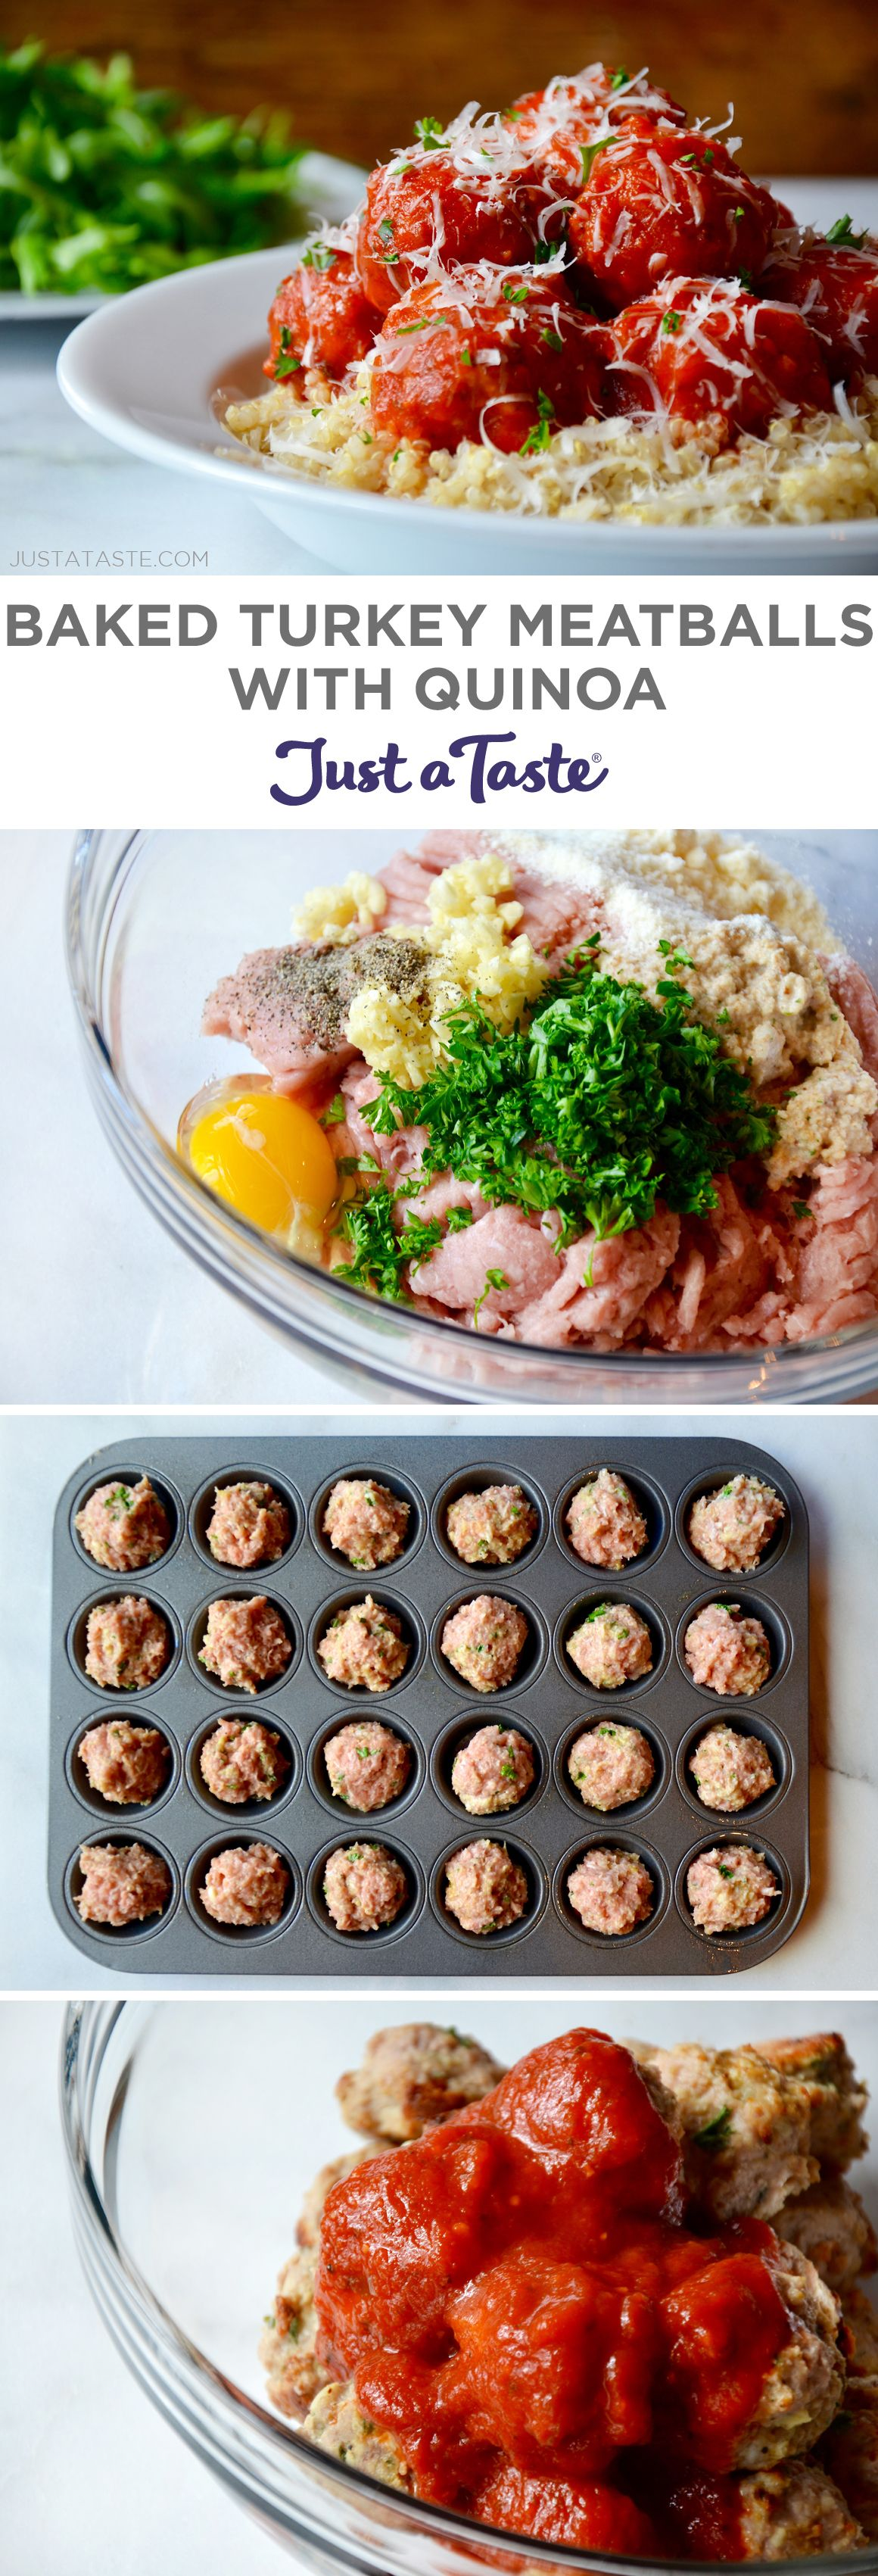 Photo of Baked Turkey Meatballs with Quinoa recipe from justataste.com #recipe #healthy